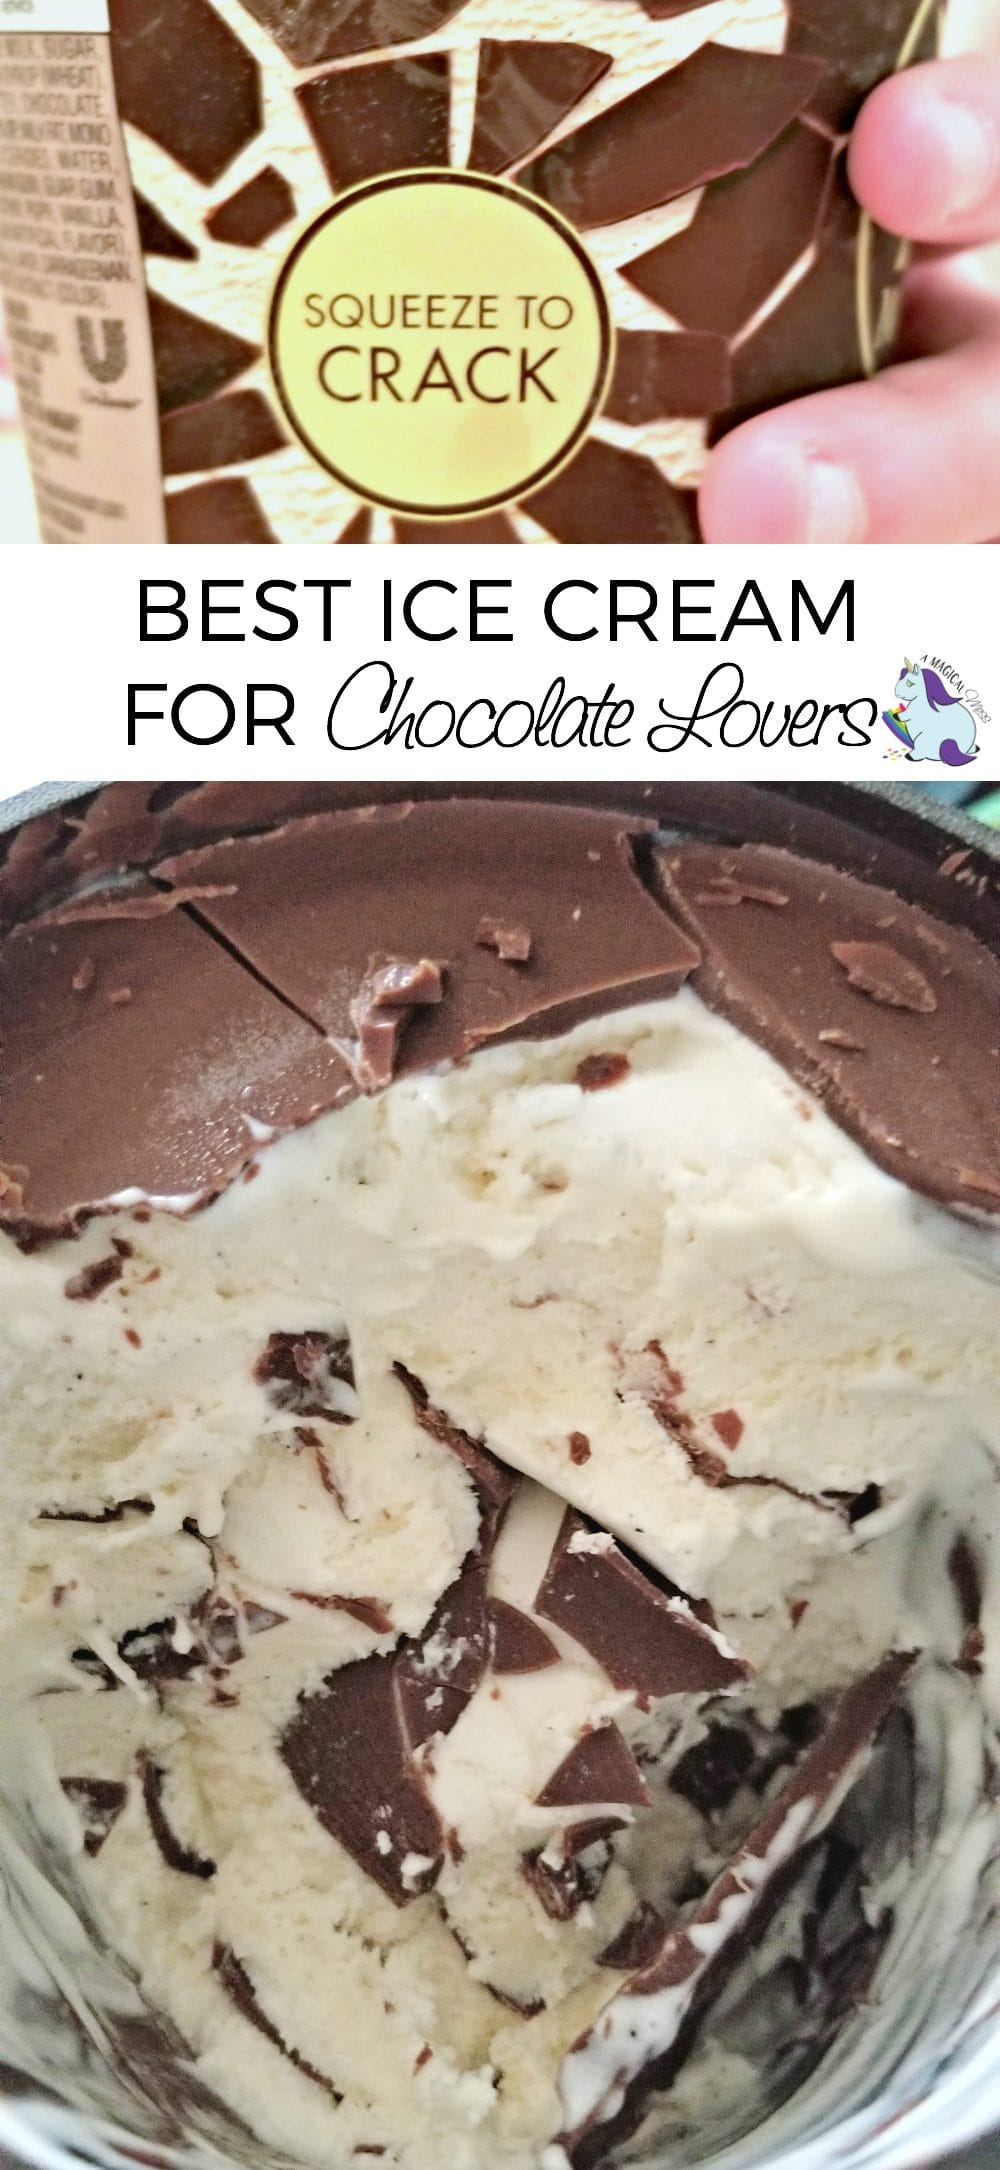 Magnum Ice Cream - The Best Ice Cream for Chocolate Lovers #BreakintoMagnumTubs 